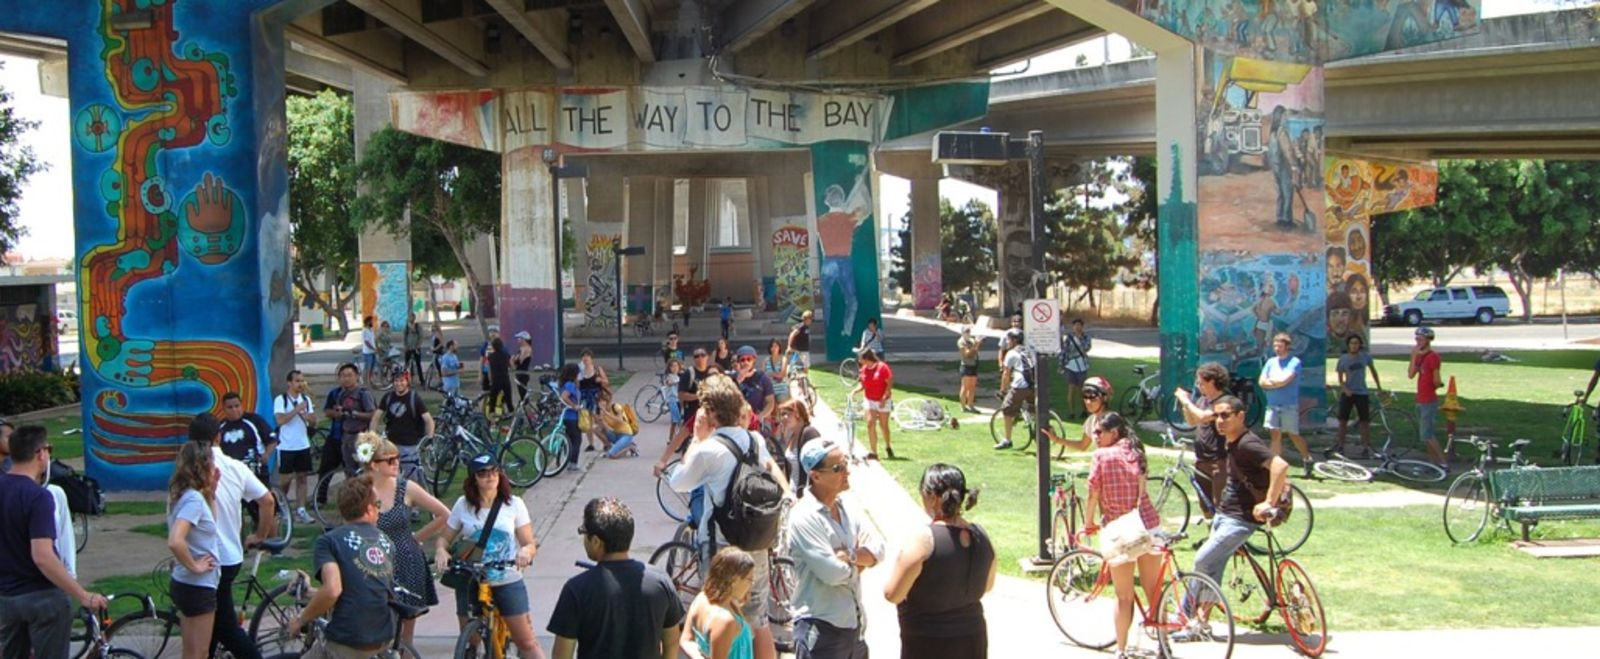 Bikers and pedestrians hang out under a street mural.